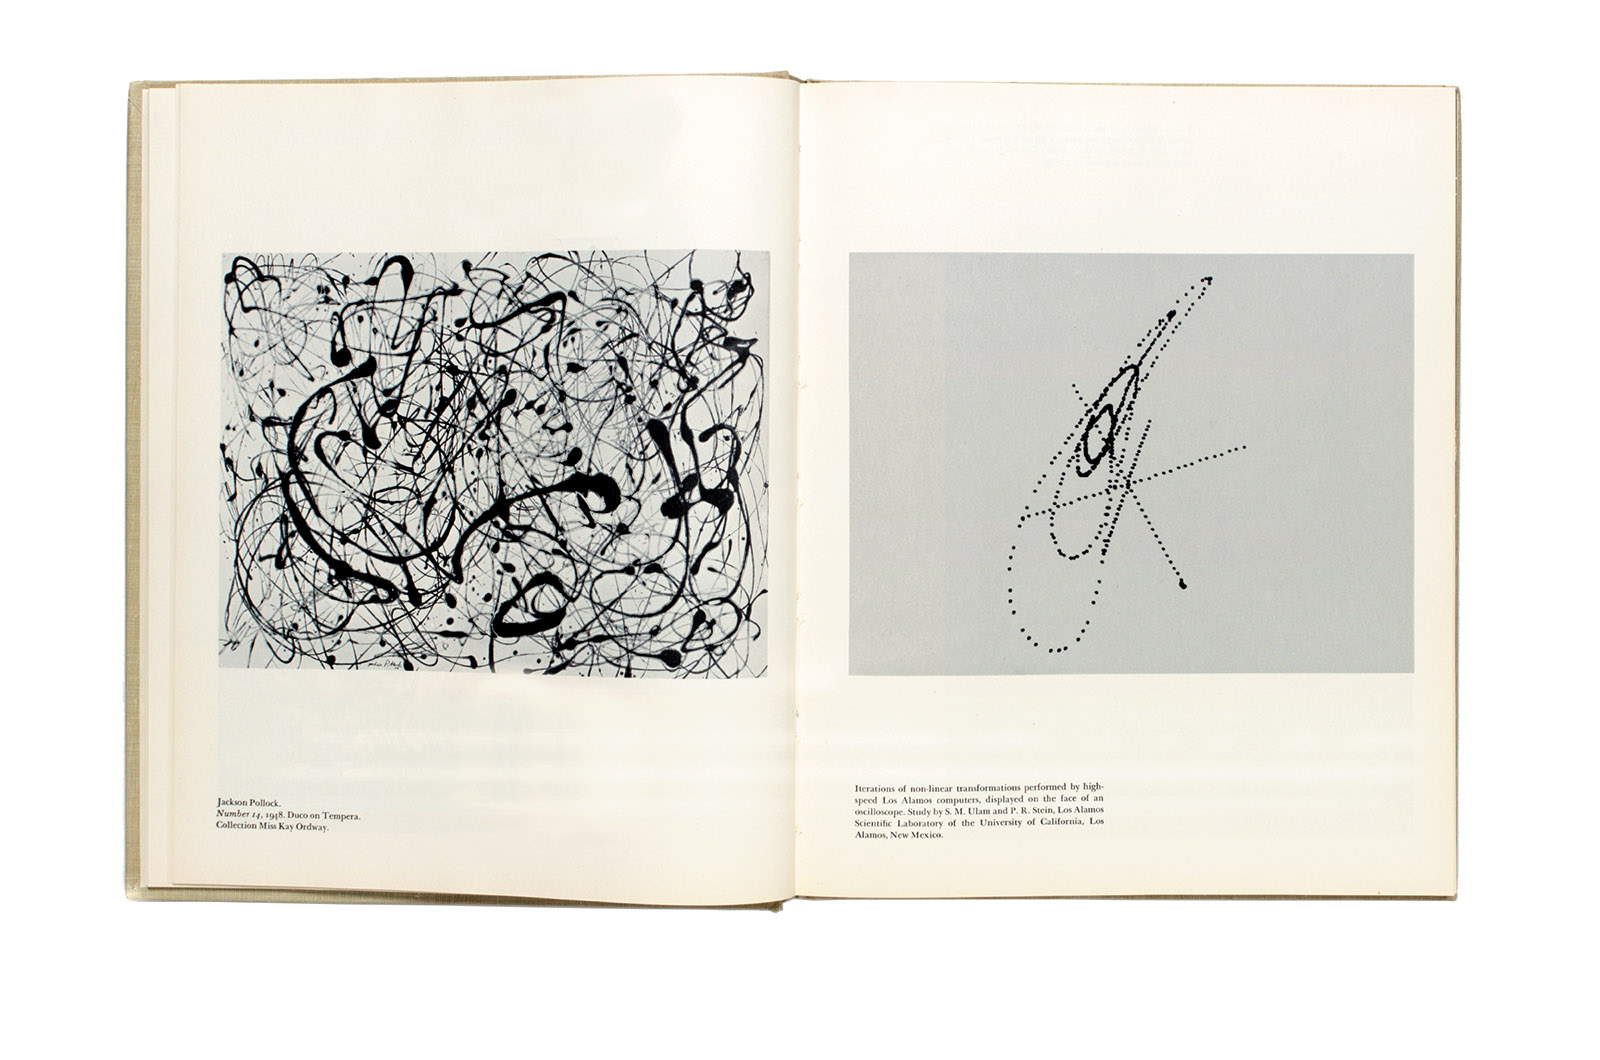 A two-page spread showing Jackson Pollock's Number 14 and optical signals recorded by an oscilloscope